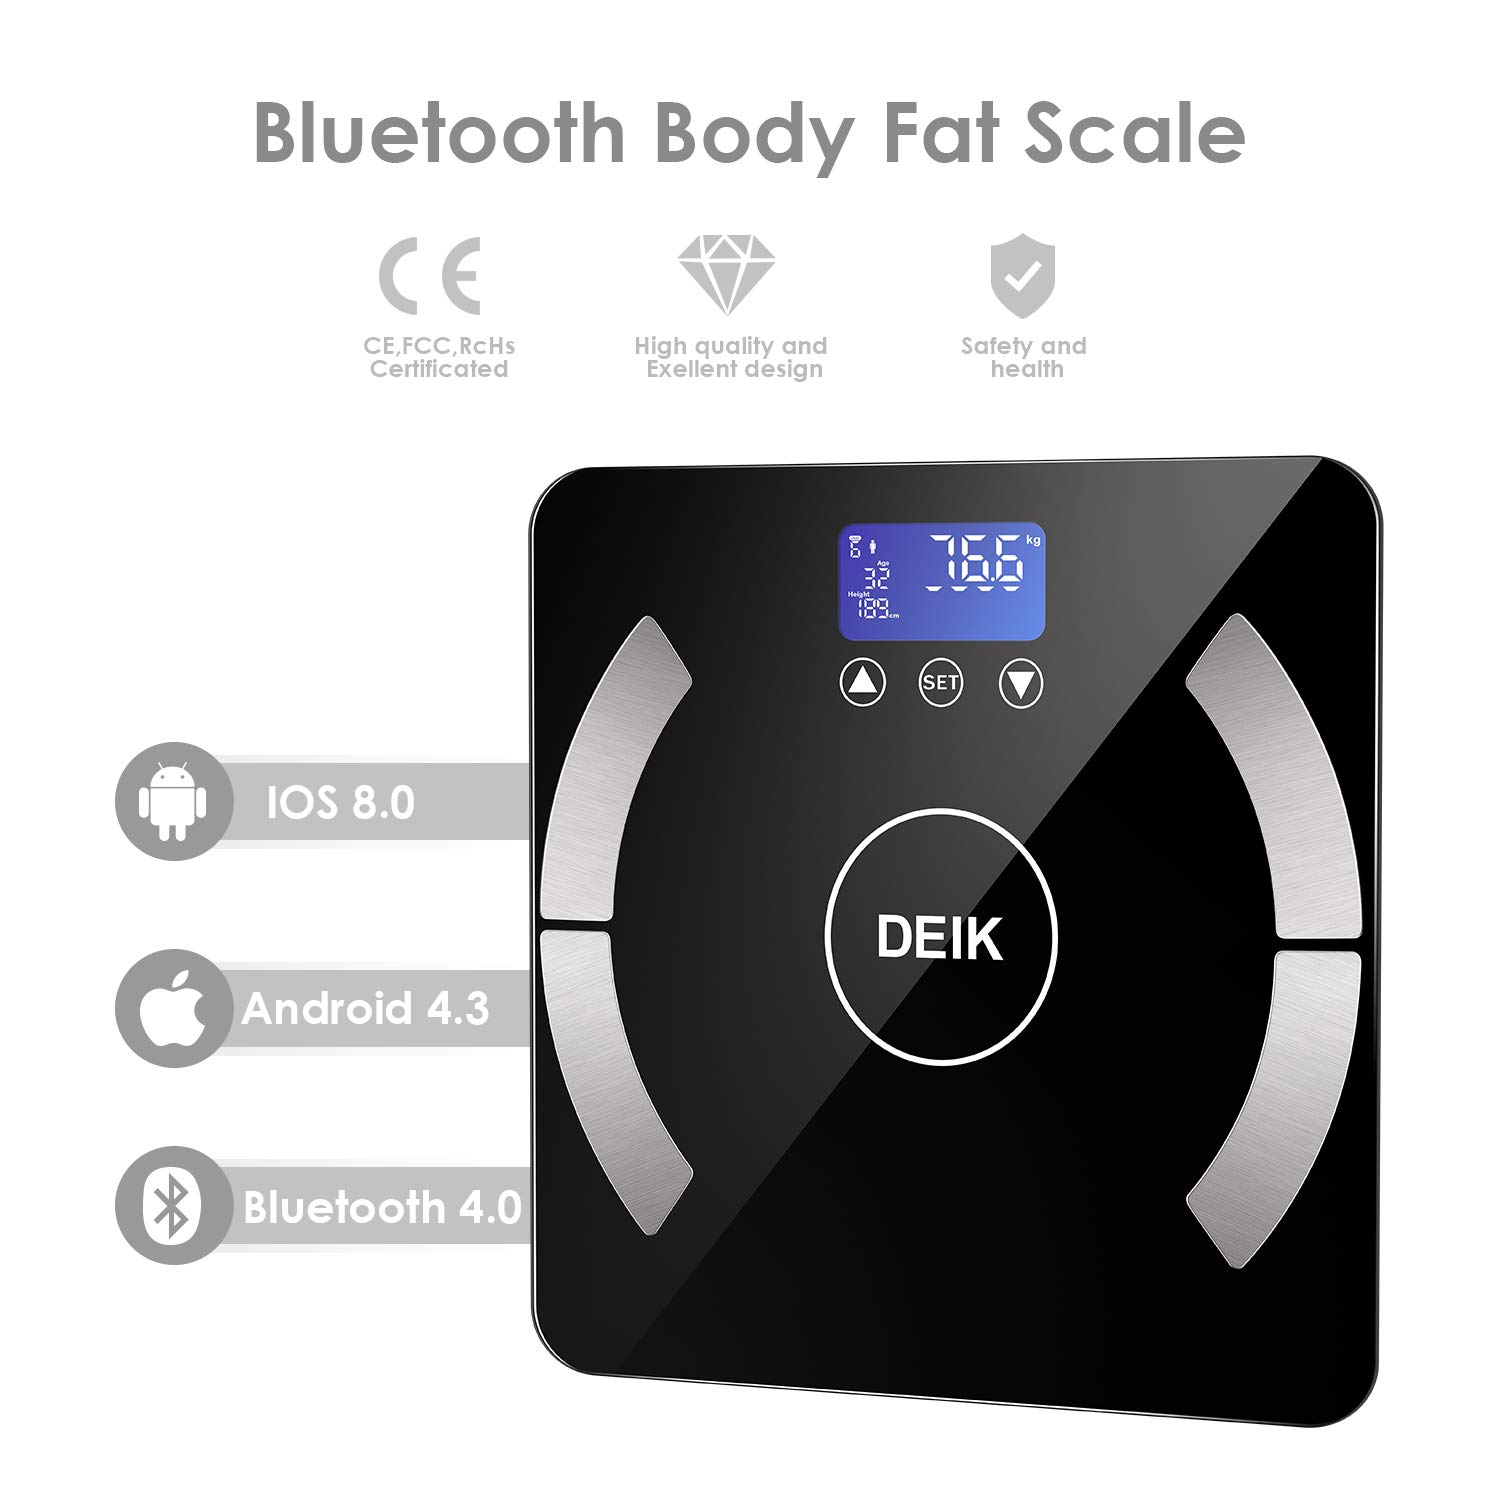 DEIK Body Fat Scale, Bluetooth Bathroom Scale with Smartphone APP, 18 Body Composition Analysis, High Precision Sensors, LCD Backlit Display, Include ...